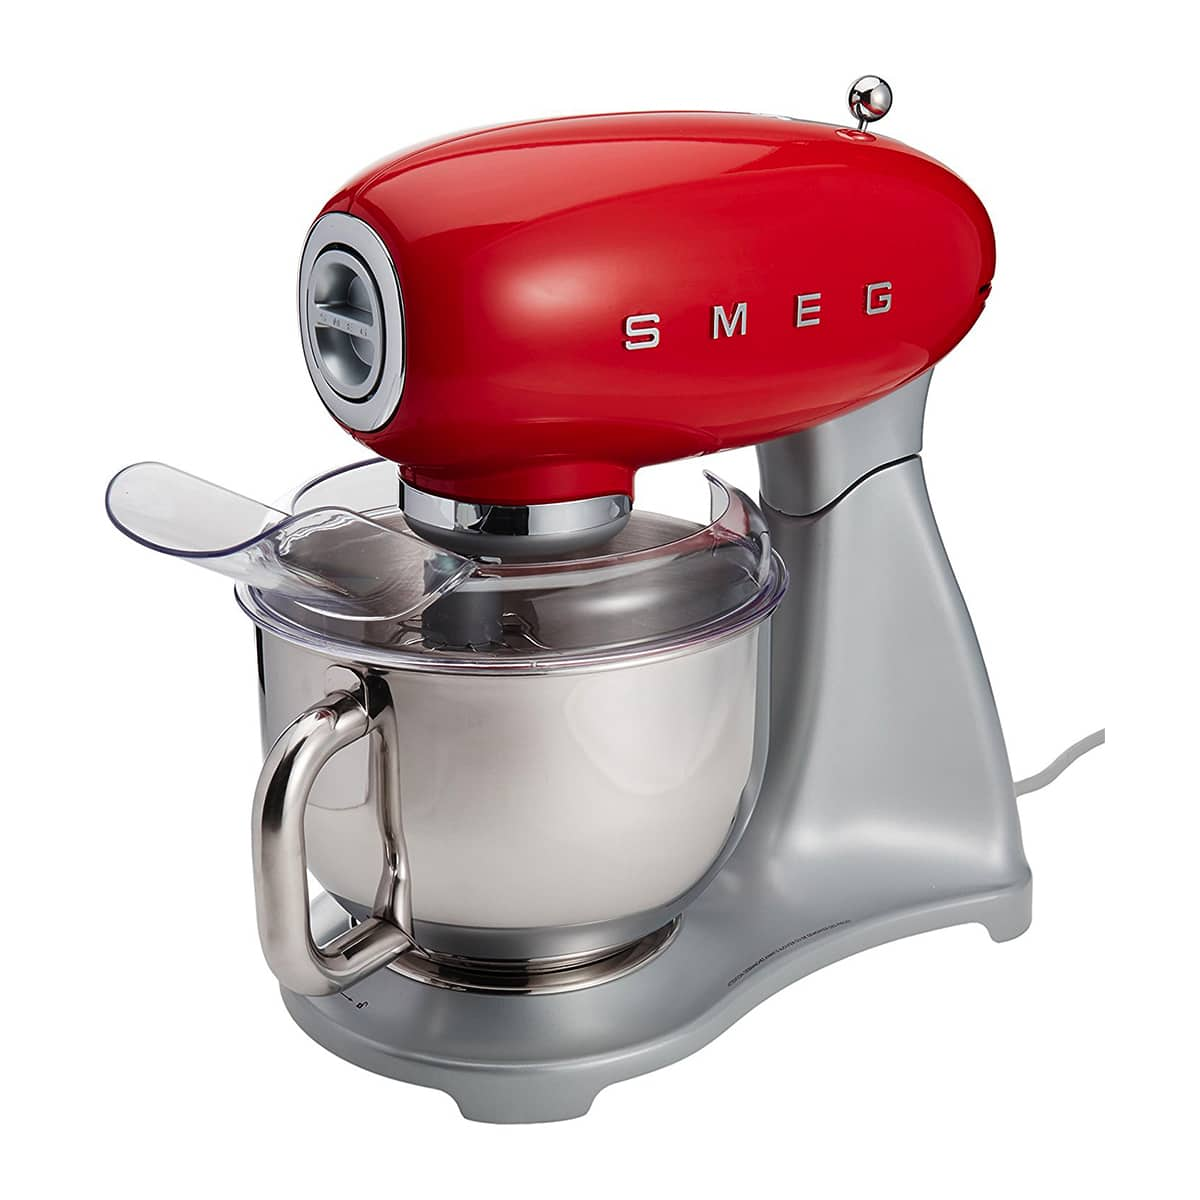 Beyond KitchenAid: 8 Other Stand Mixers on the Market: gallery image 3